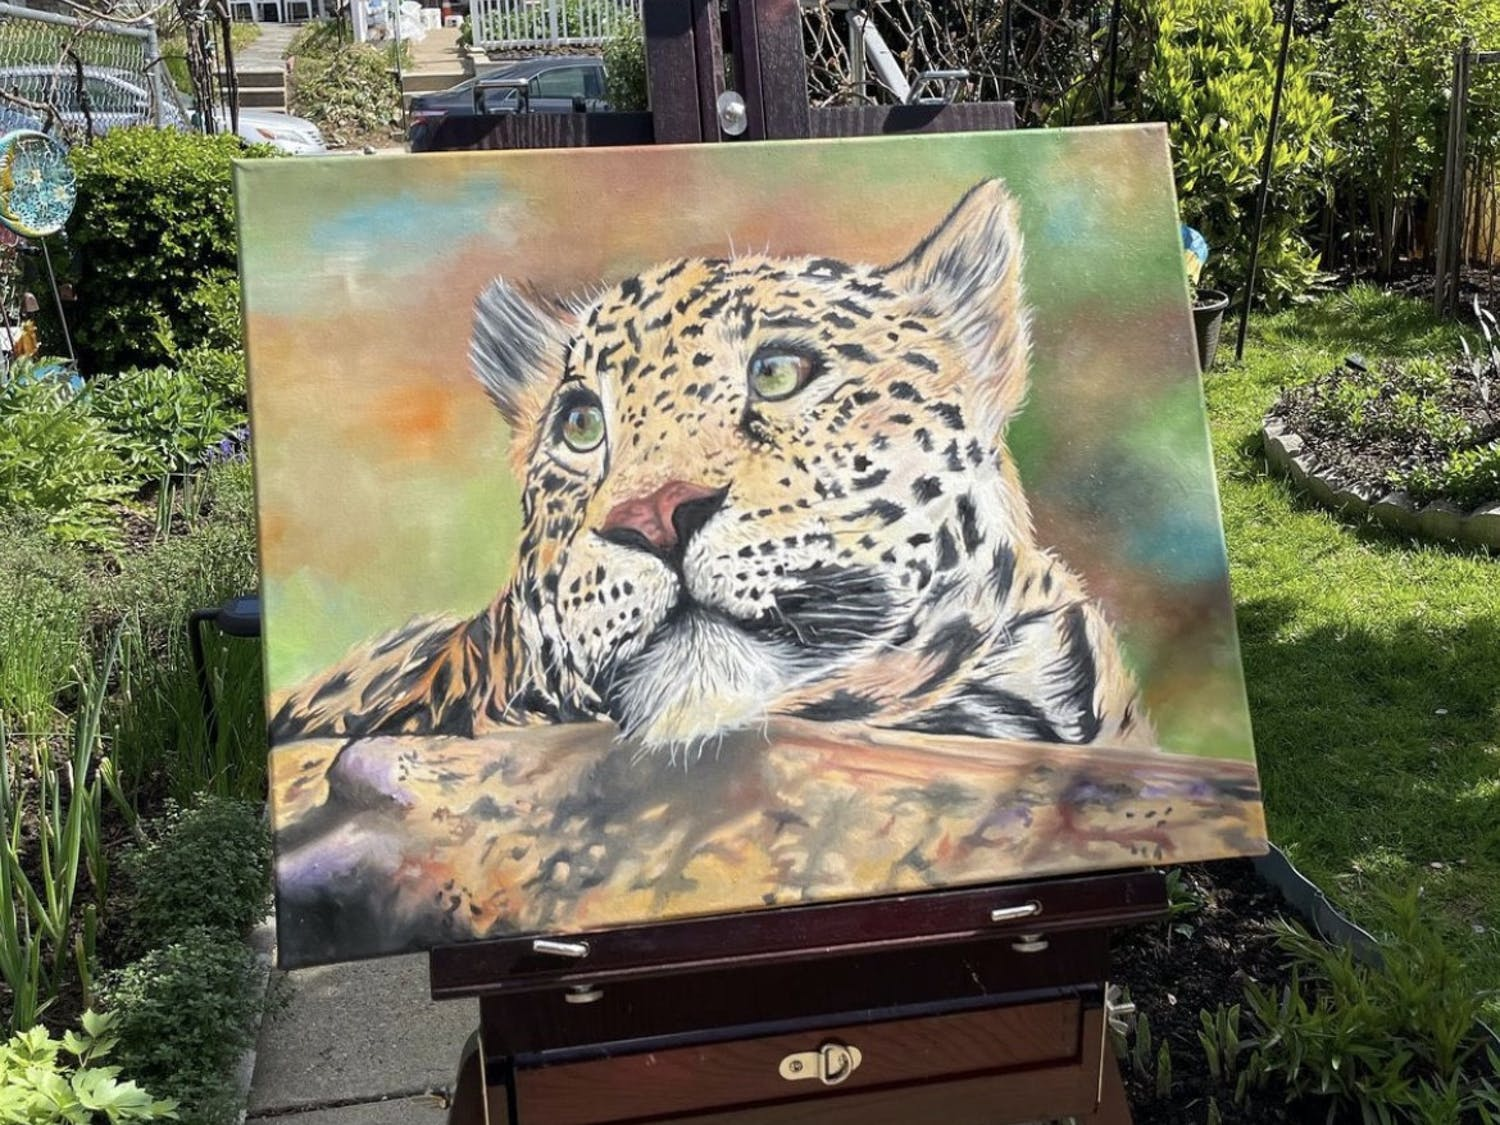 I'm Ivanna Dudych, a senior at Mast Community Charter School and this is my oil painting of leopard I created for my mother. I made this painting to experiment with different colors and brush stroke techniques to get the realistic feel of the painting.